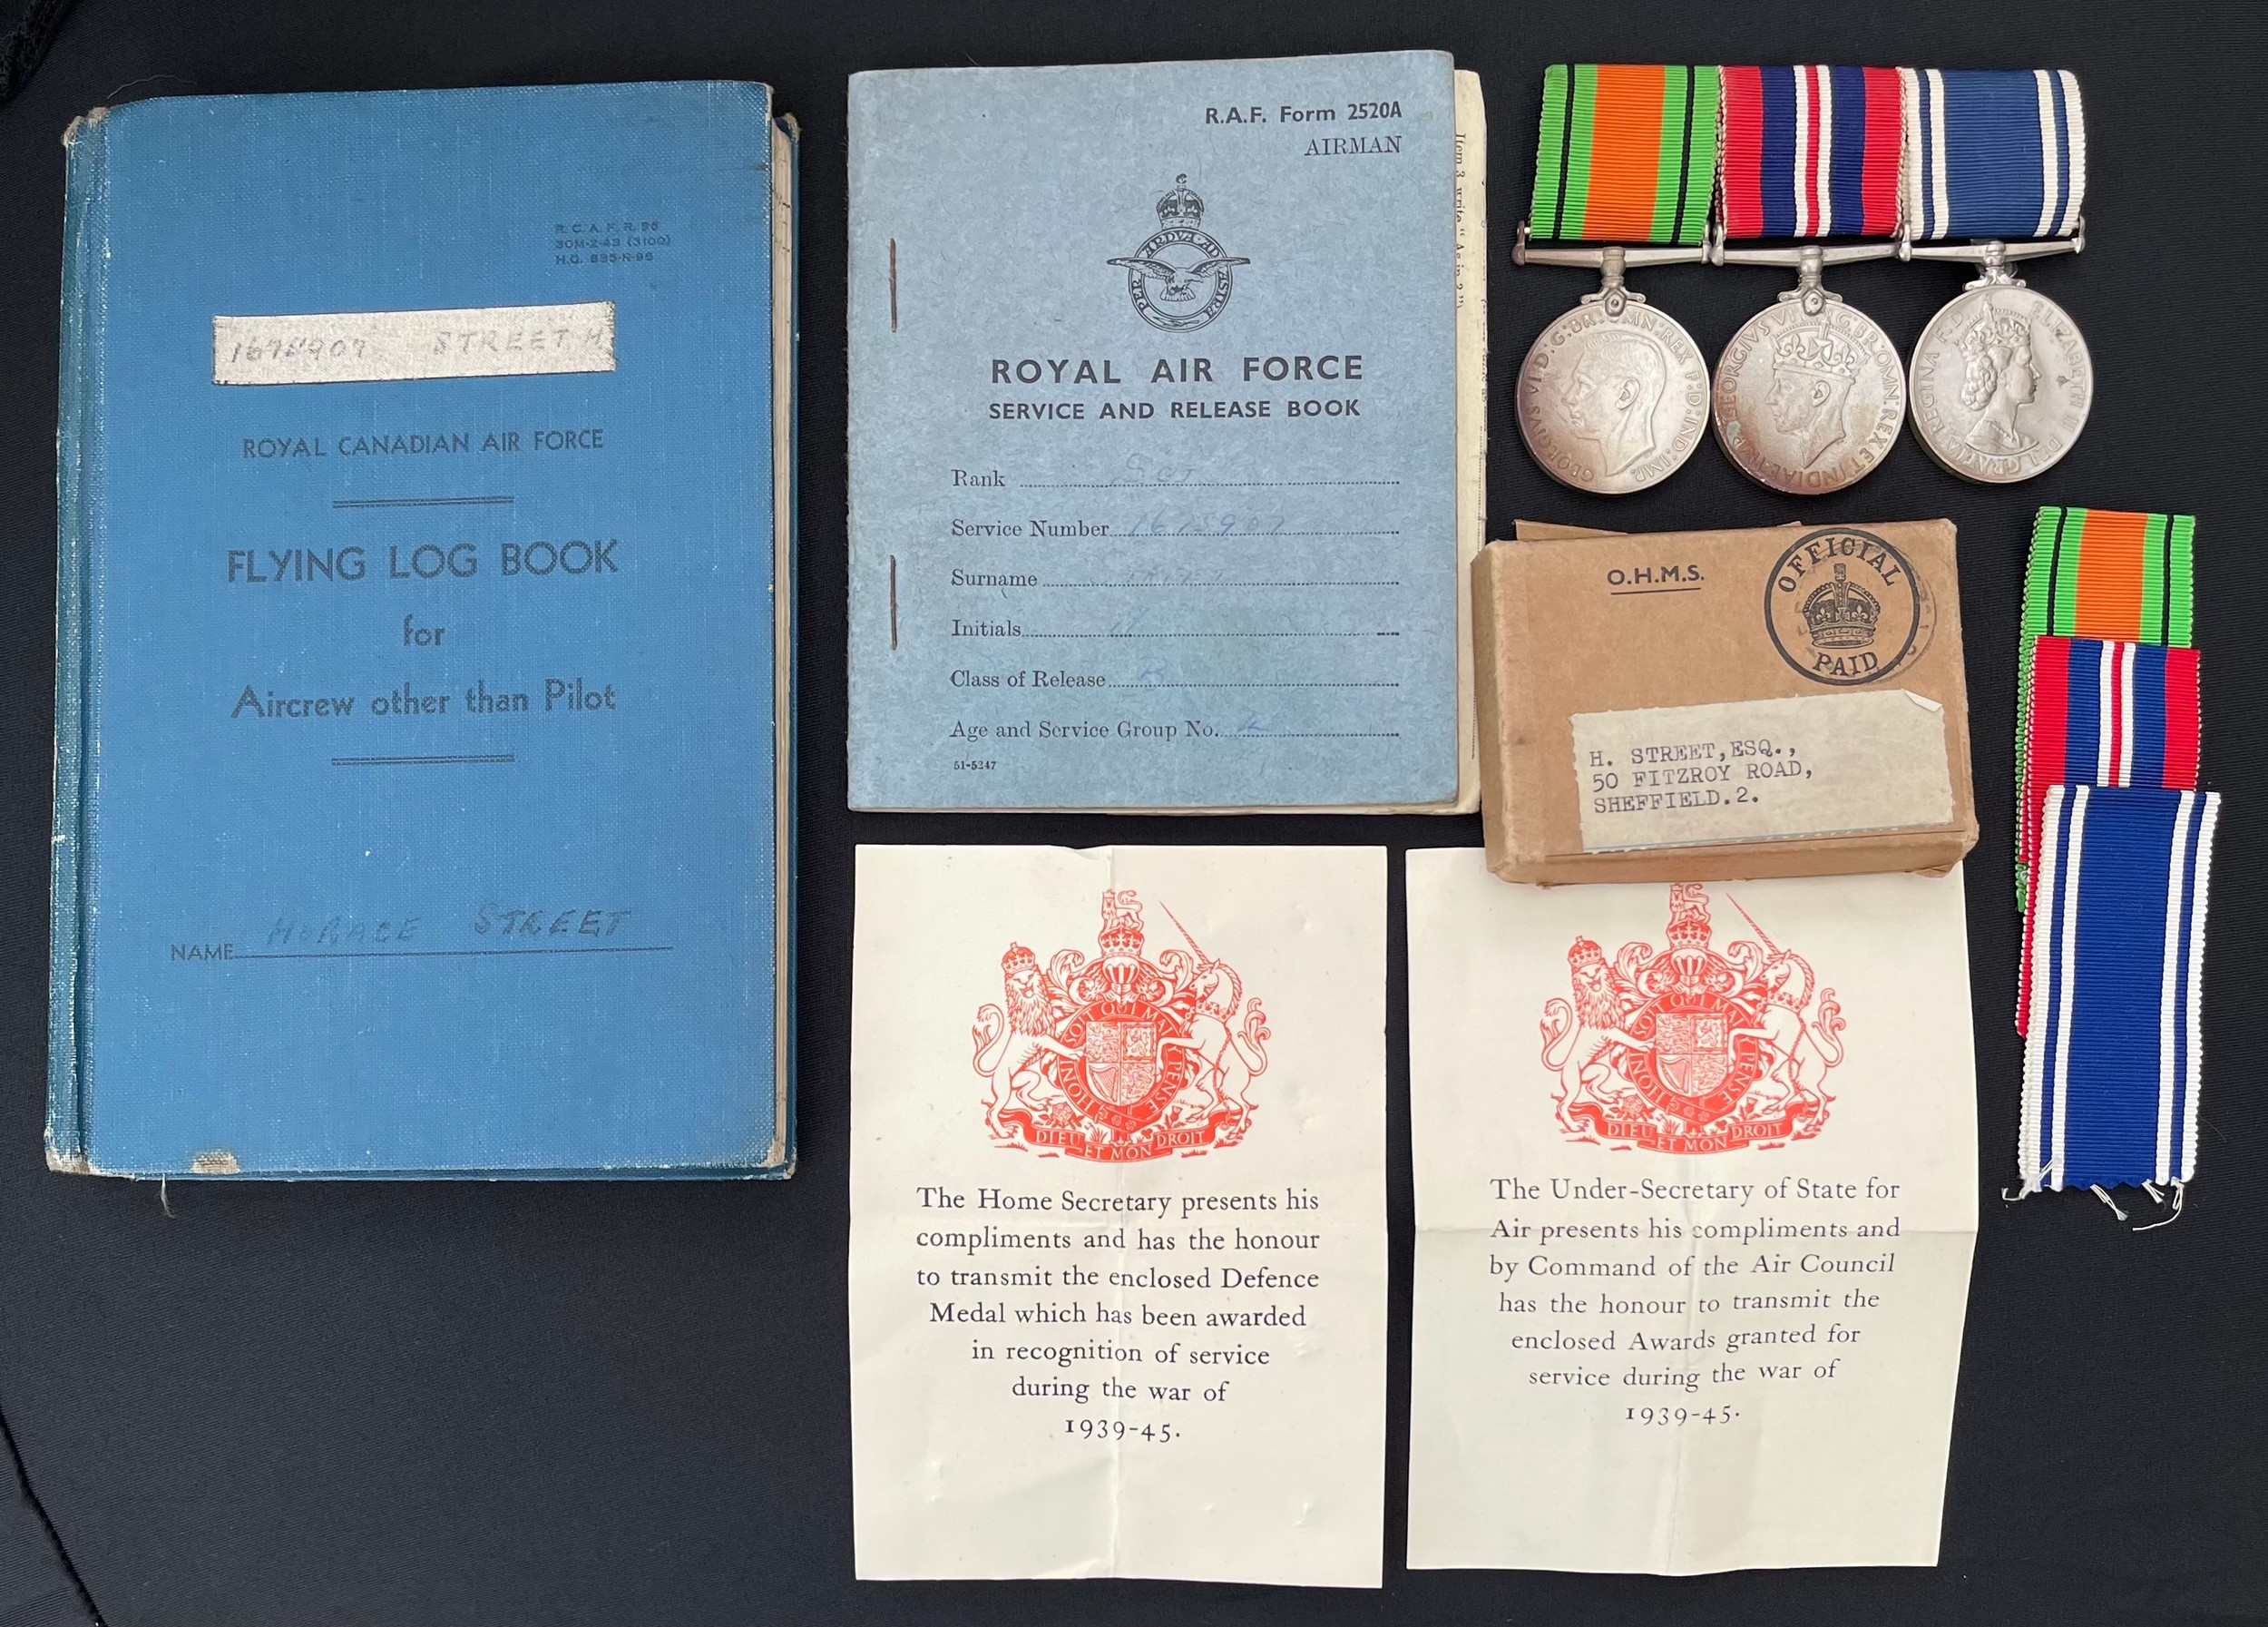 WW2 British RAF Navigators Log book, Service & Release Book and Medals to 1675907 Sgt Horace Street,